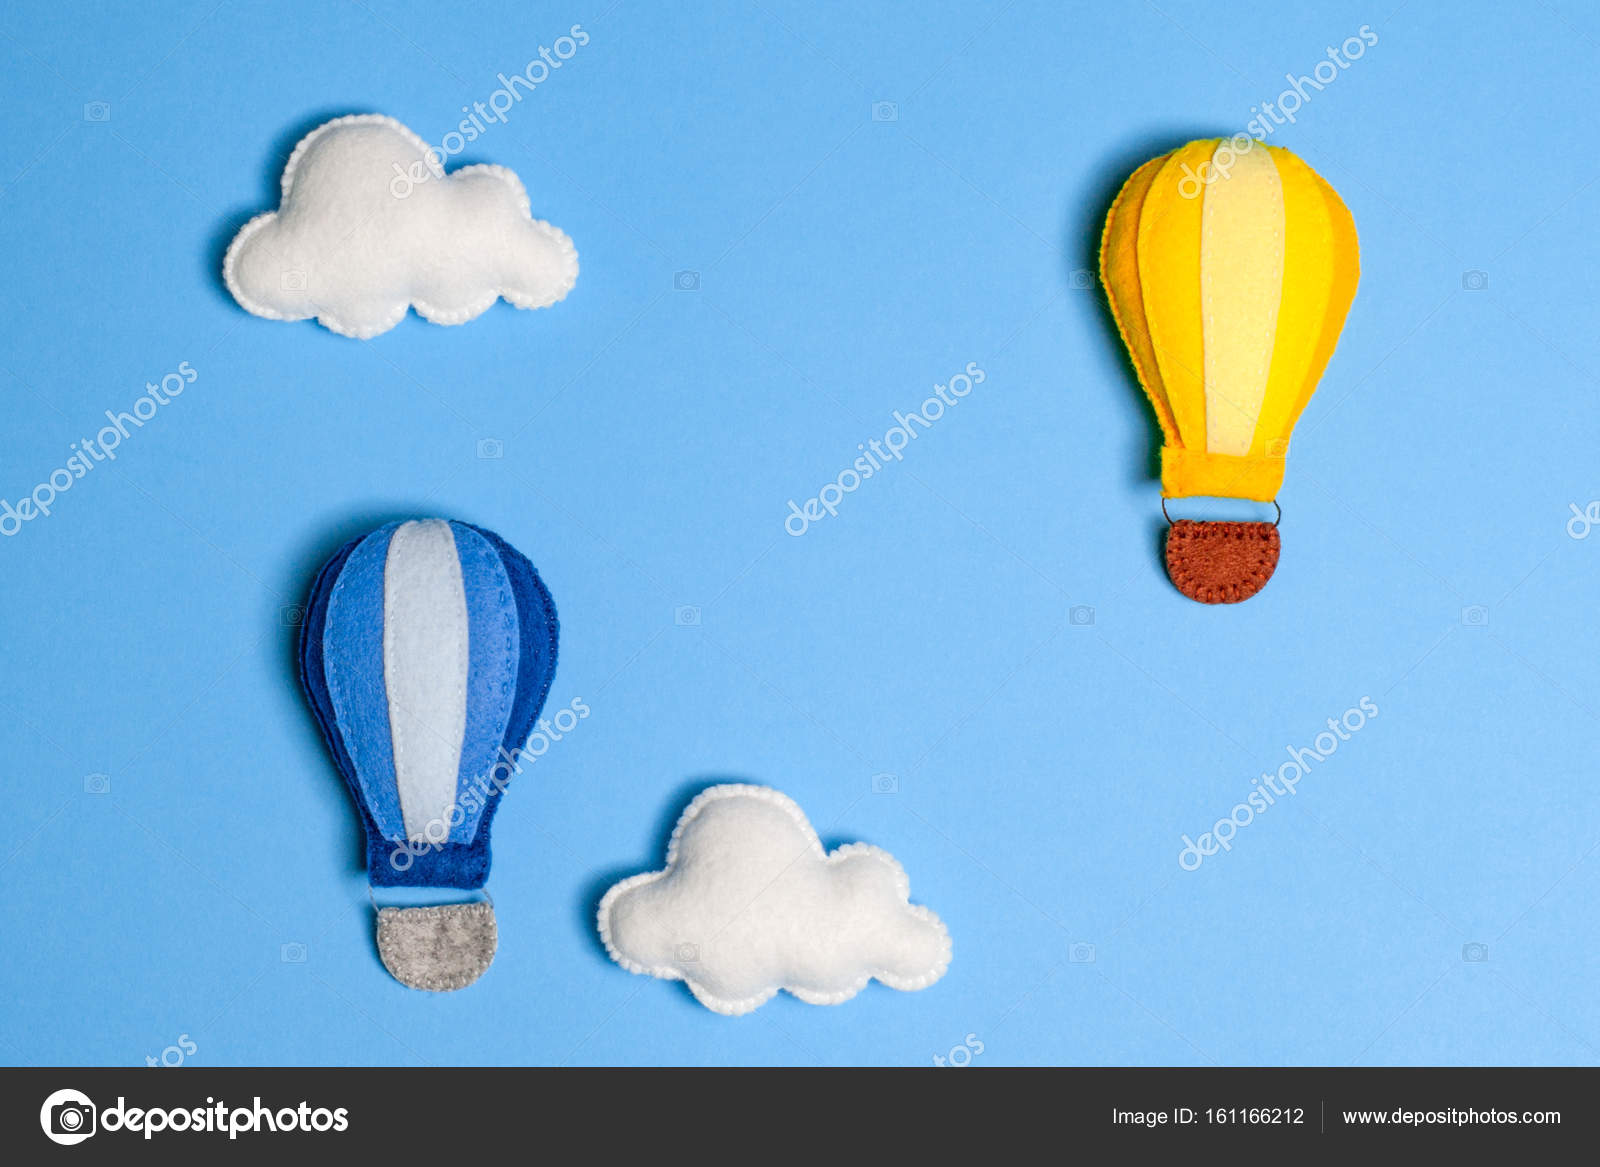 Hot Air Balloon In Blue Sky With Clouds Frame Copyspace Hand Made